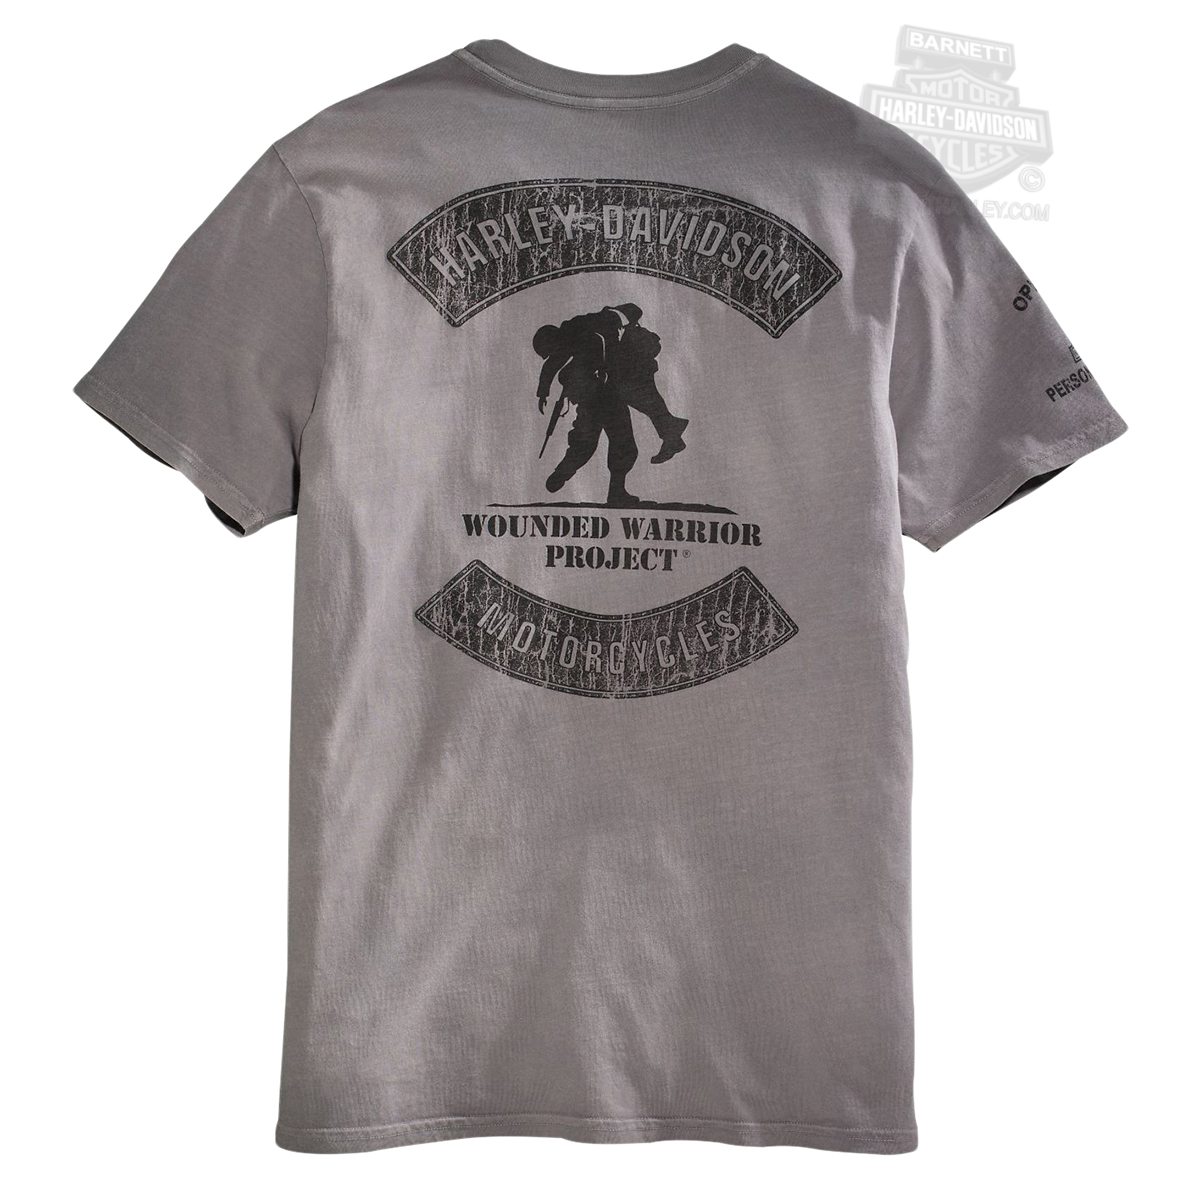 wounded warrior project shirts Find high quality printed wounded warrior t-shirts at cafepress see great designs on styles for men, women, kids, babies, and even dog t-shirts free returns 100%.